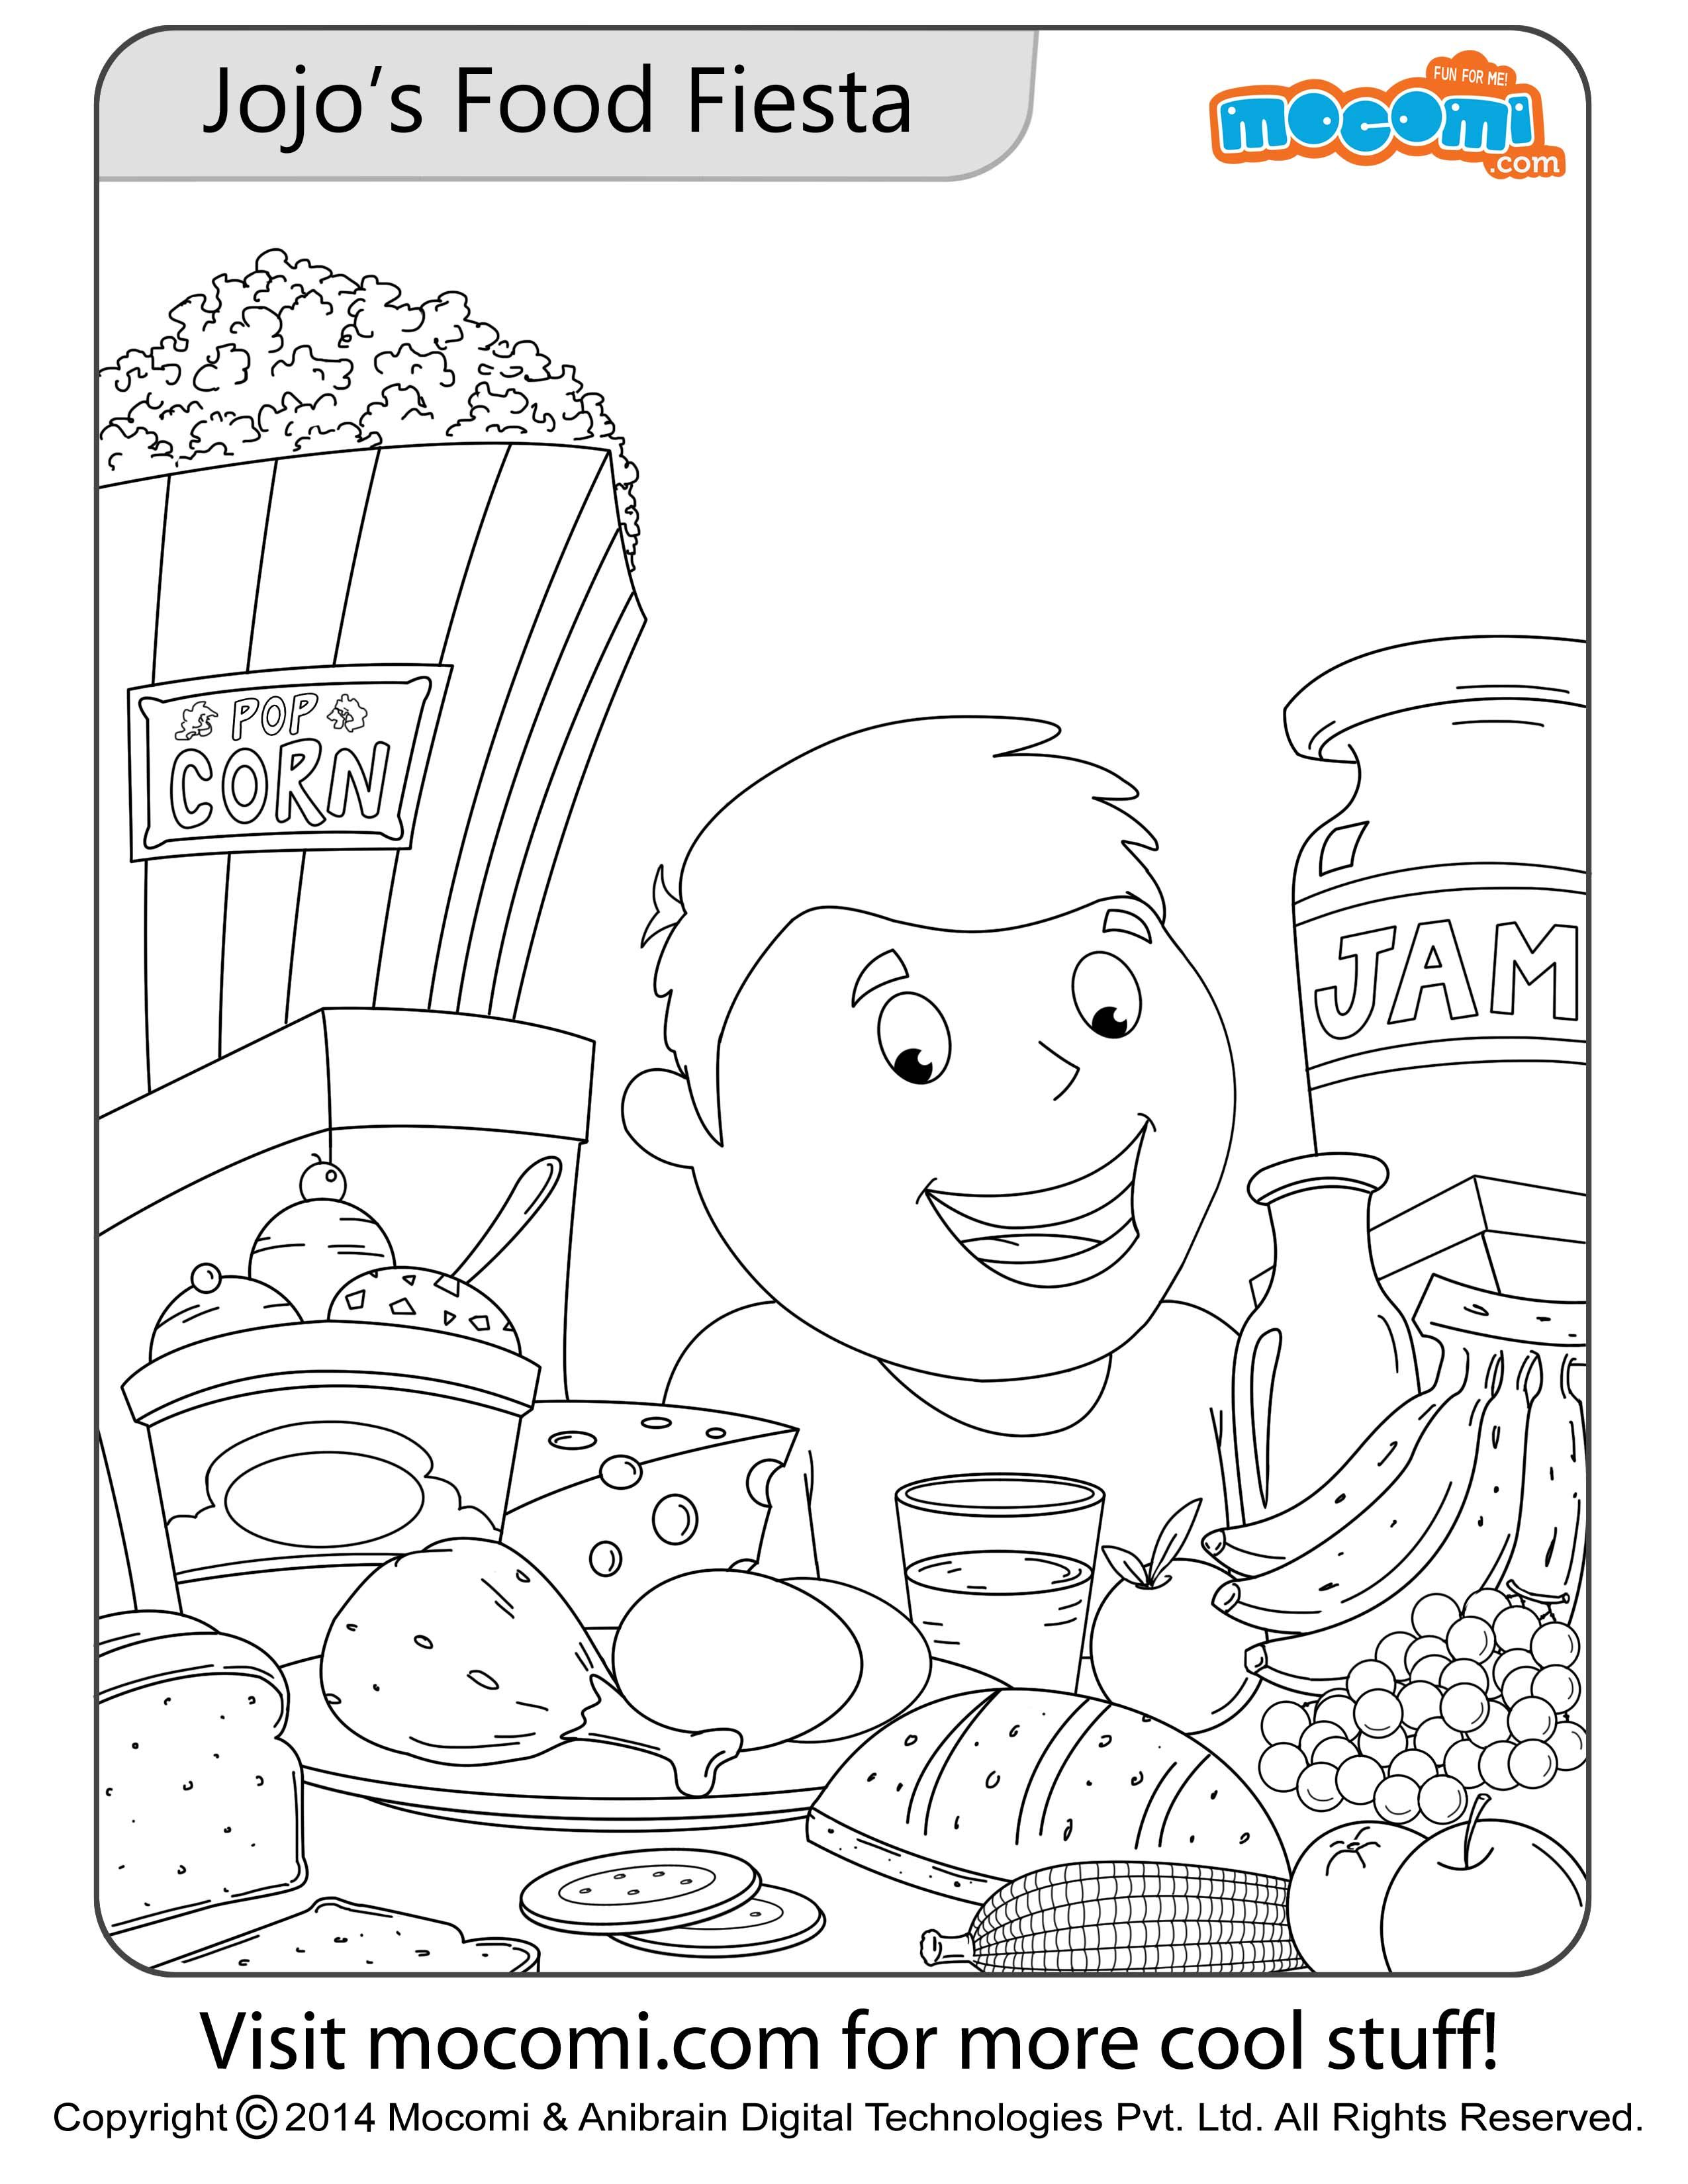 Jojo 39 s Food Fiesta Colouring Page